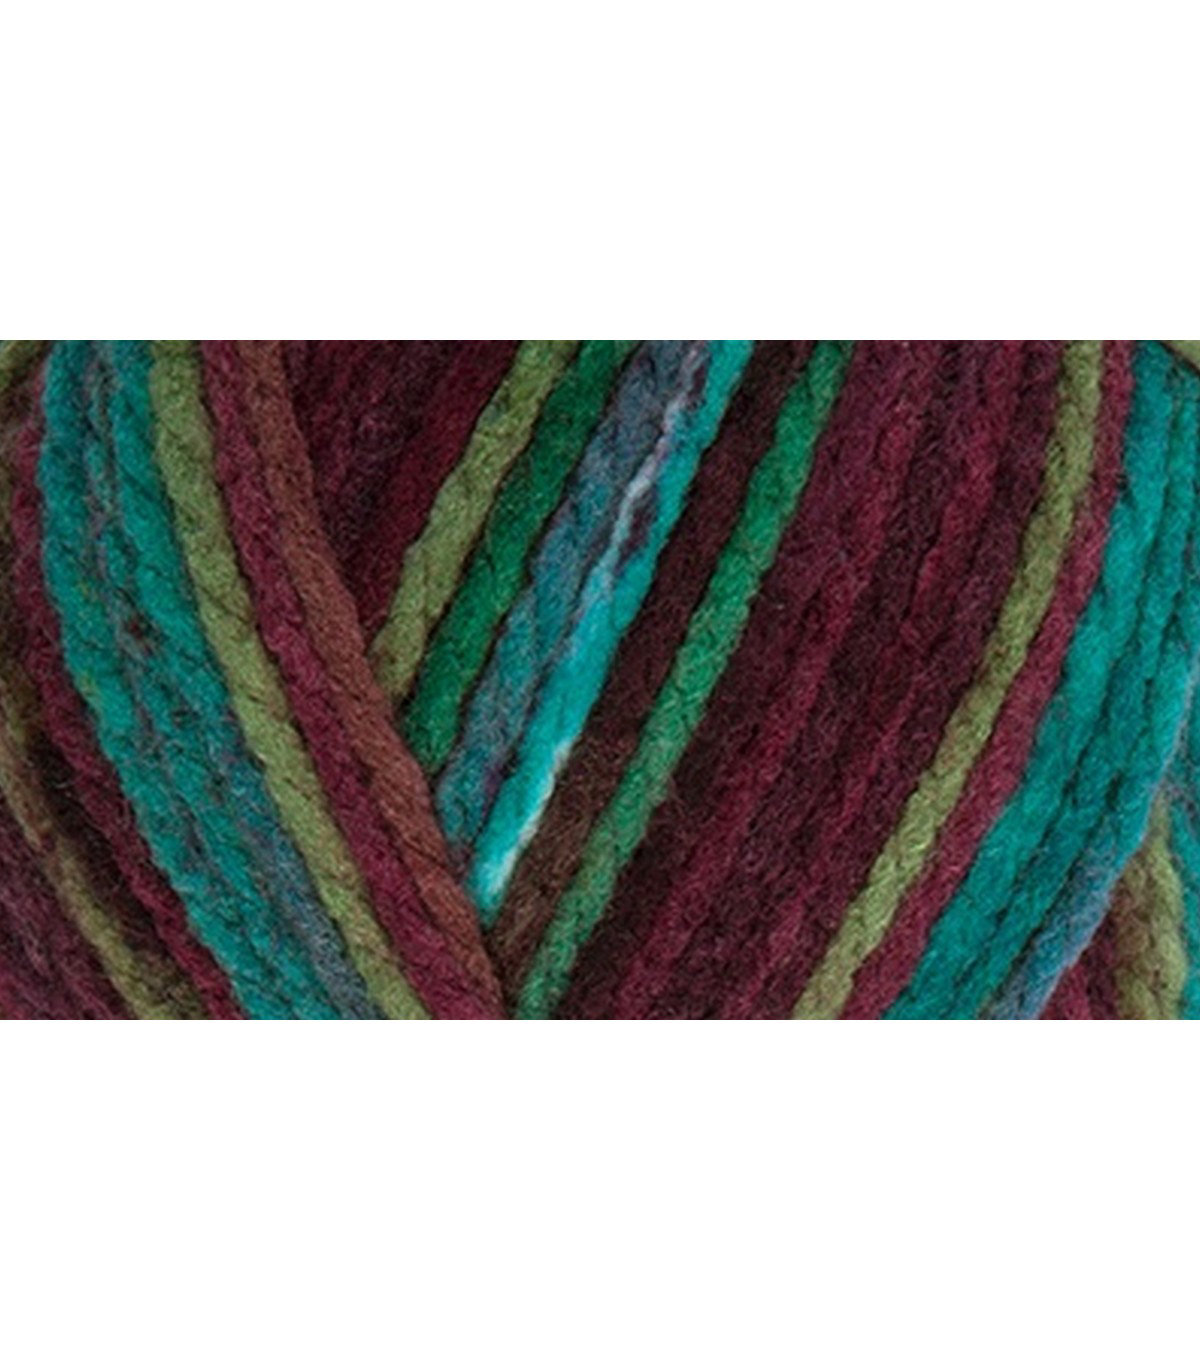 Premier Yarns Serenity Chunky Big Multi Yarn